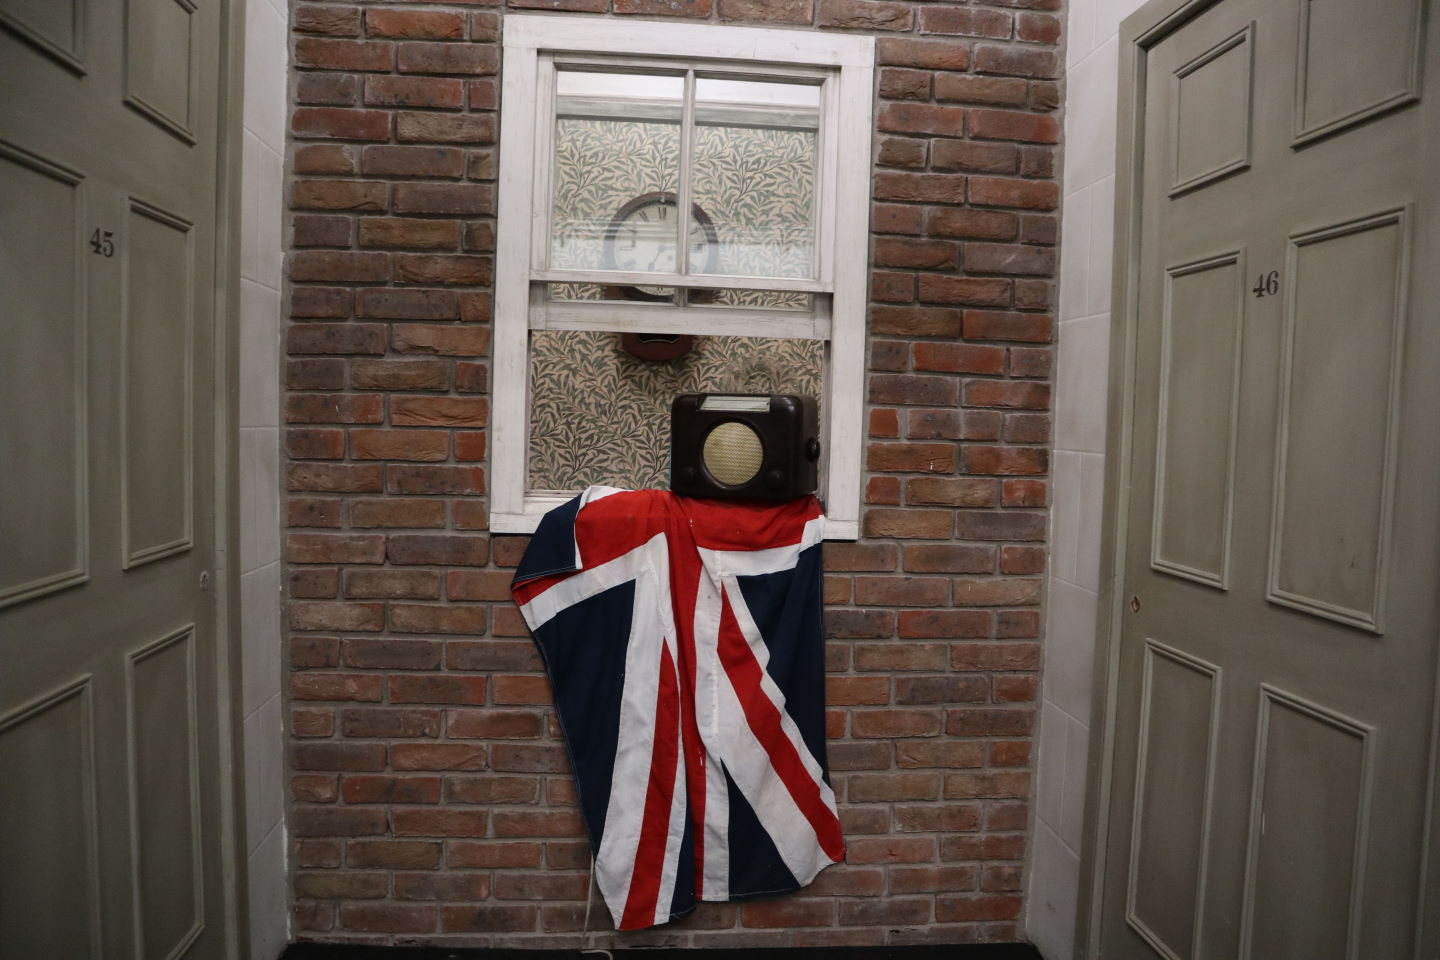 Liberation Day Jersey 1945 Union flag displayed outside the window - War Tunnels Jersey